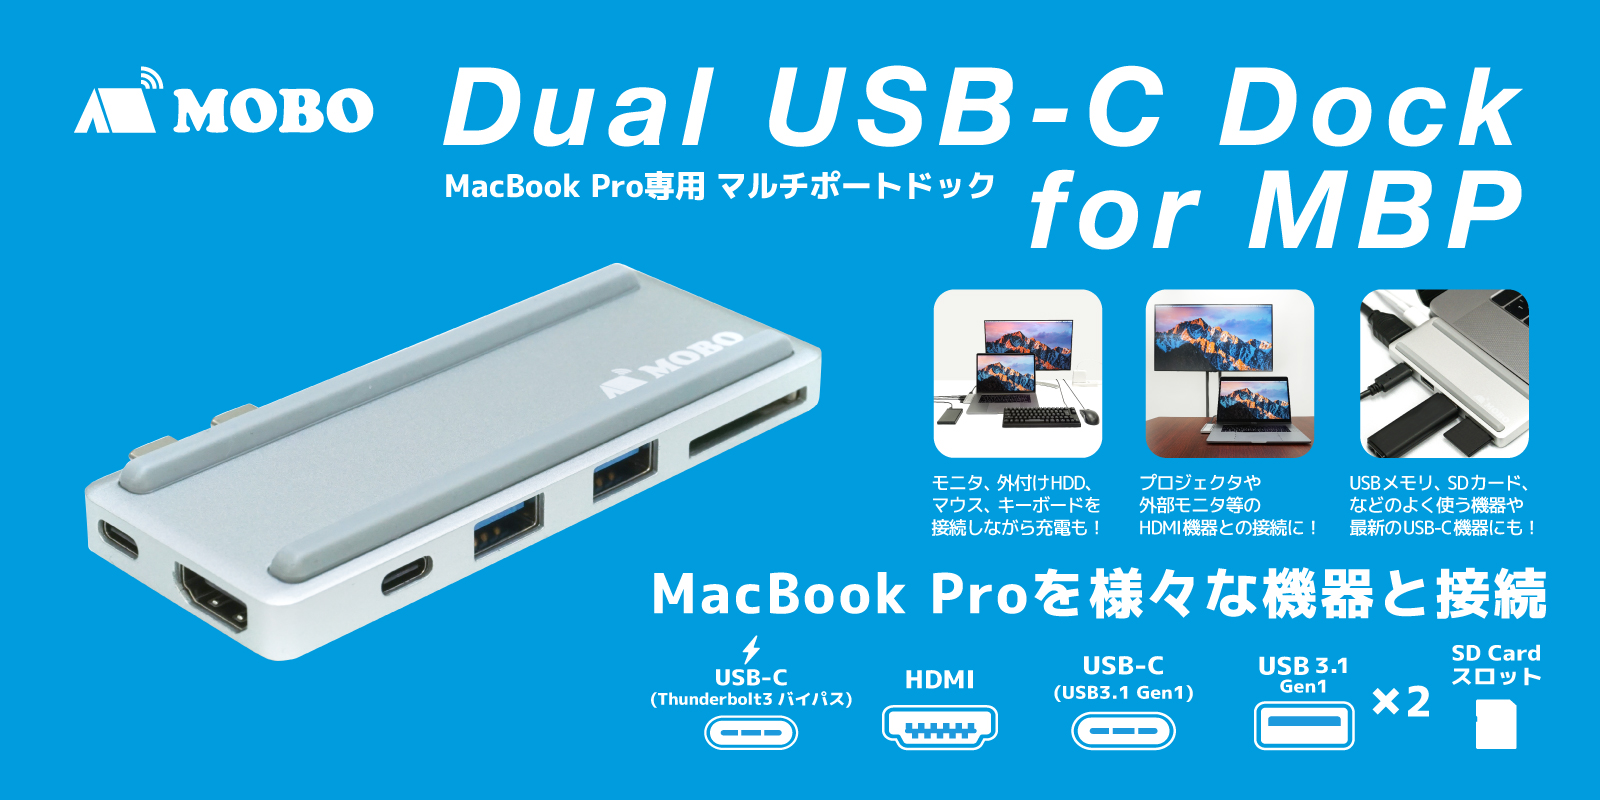 Dual USB-C Dock for MBP